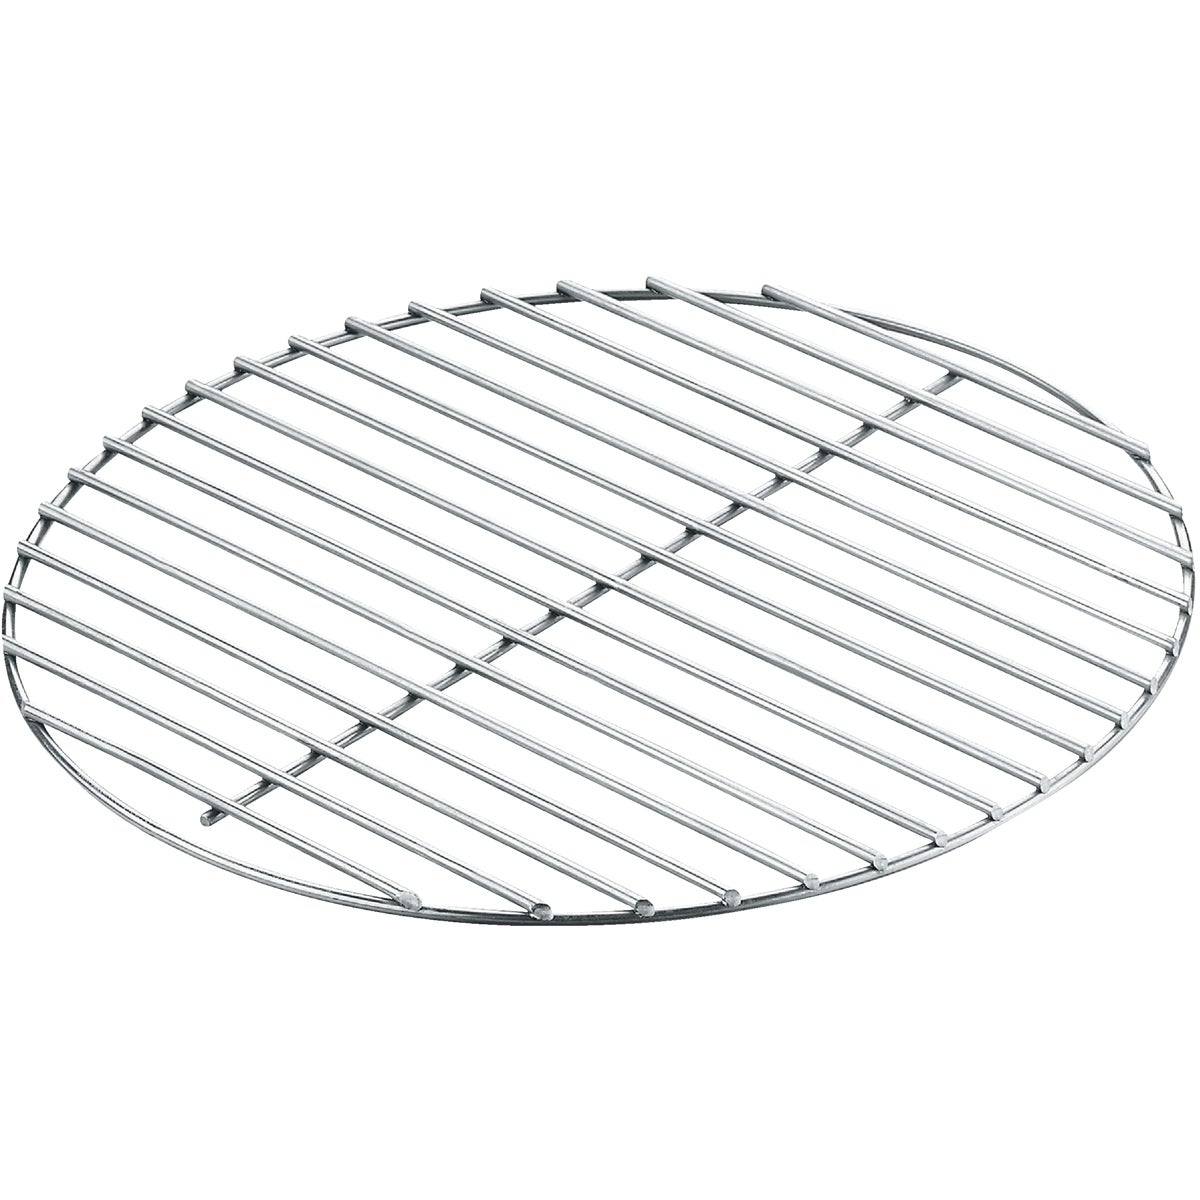 """18.5""""REPL CHARCOAL GRATE - 7440 by Weber"""